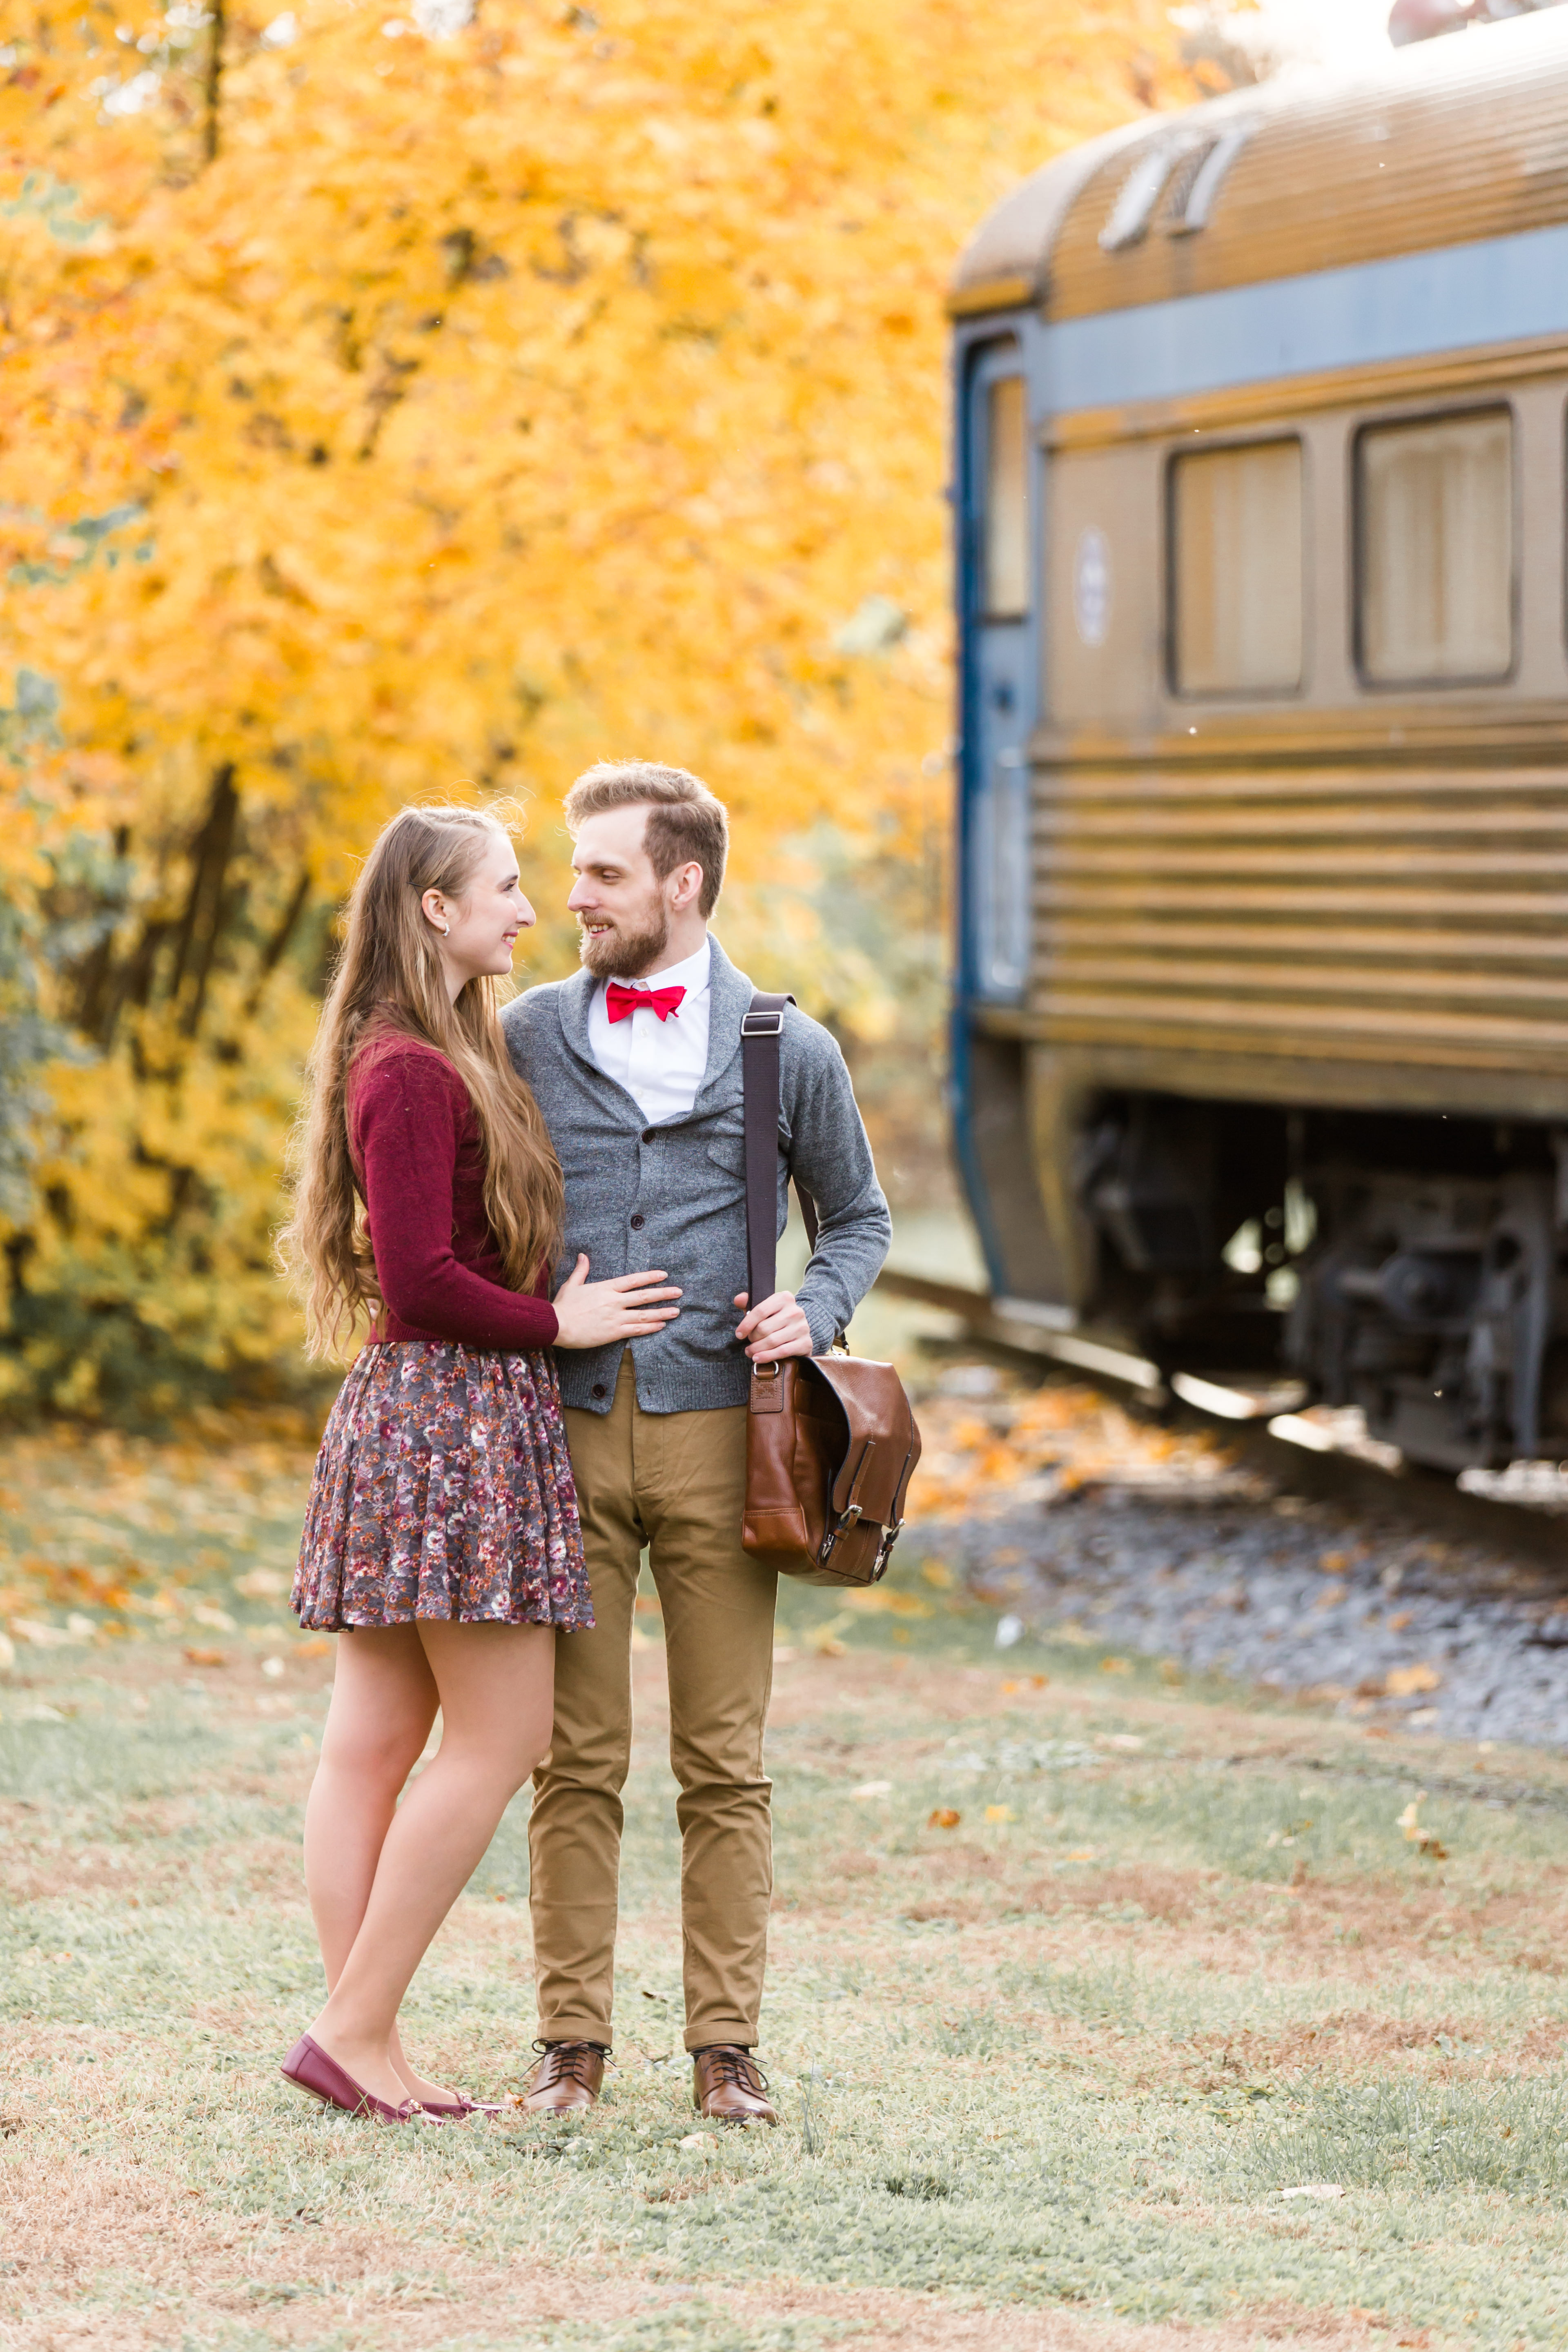 Fall engagement photos at Talleyrand Park in Victorian Bellefonte central Pennsylvania featuring inactive train railroad track